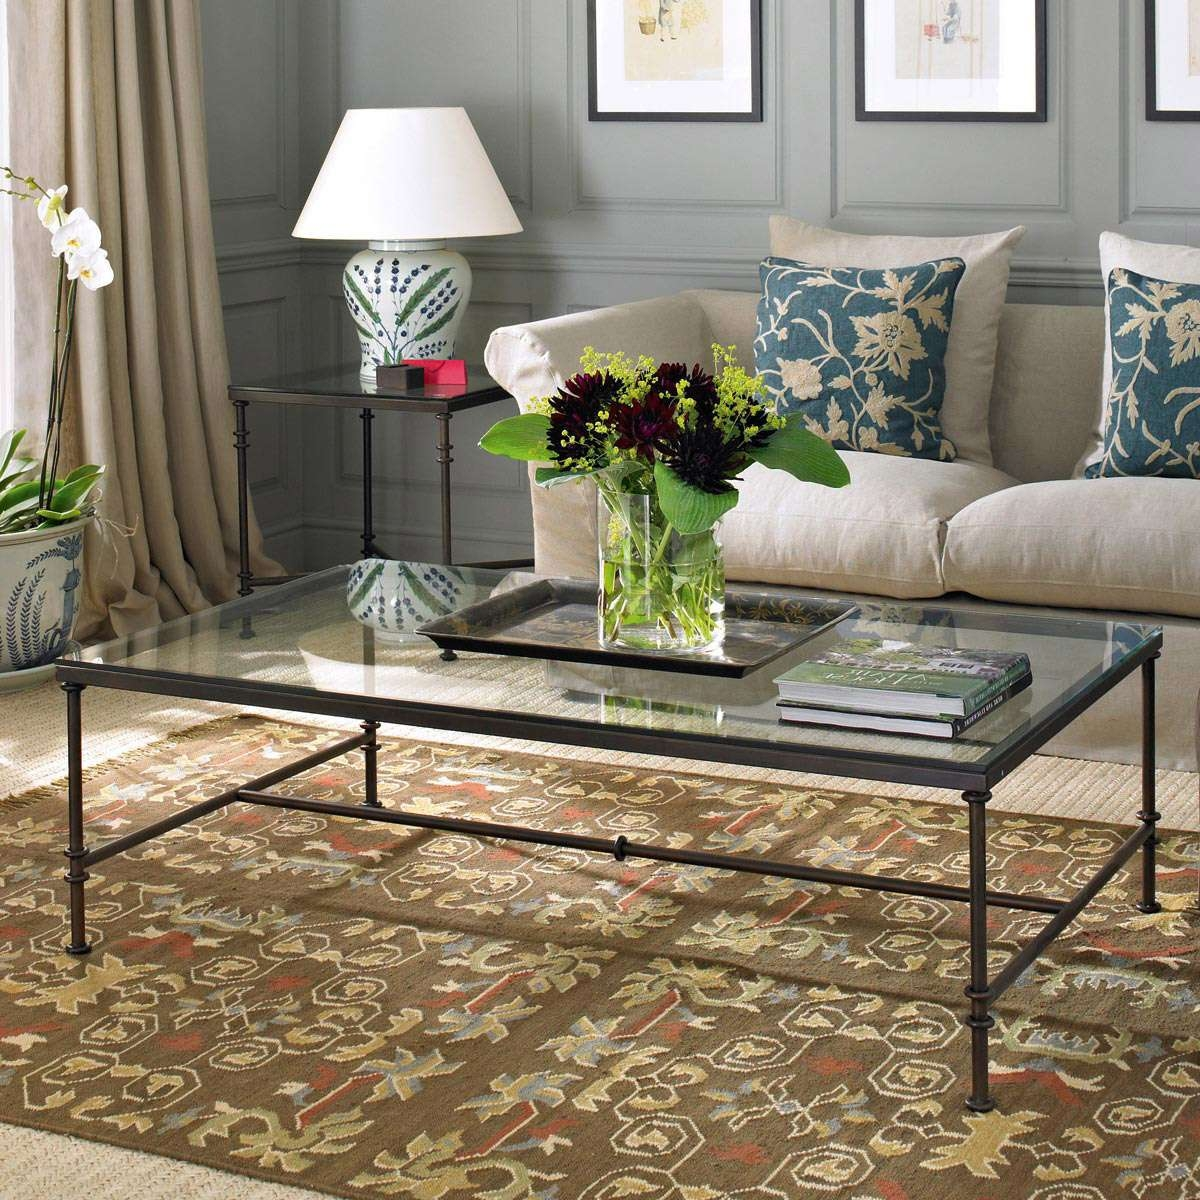 Metal & Glass Coffee Tables – Durable Metal Frame Finish, Clear Regarding Current Coffee Tables Metal And Glass (View 13 of 20)